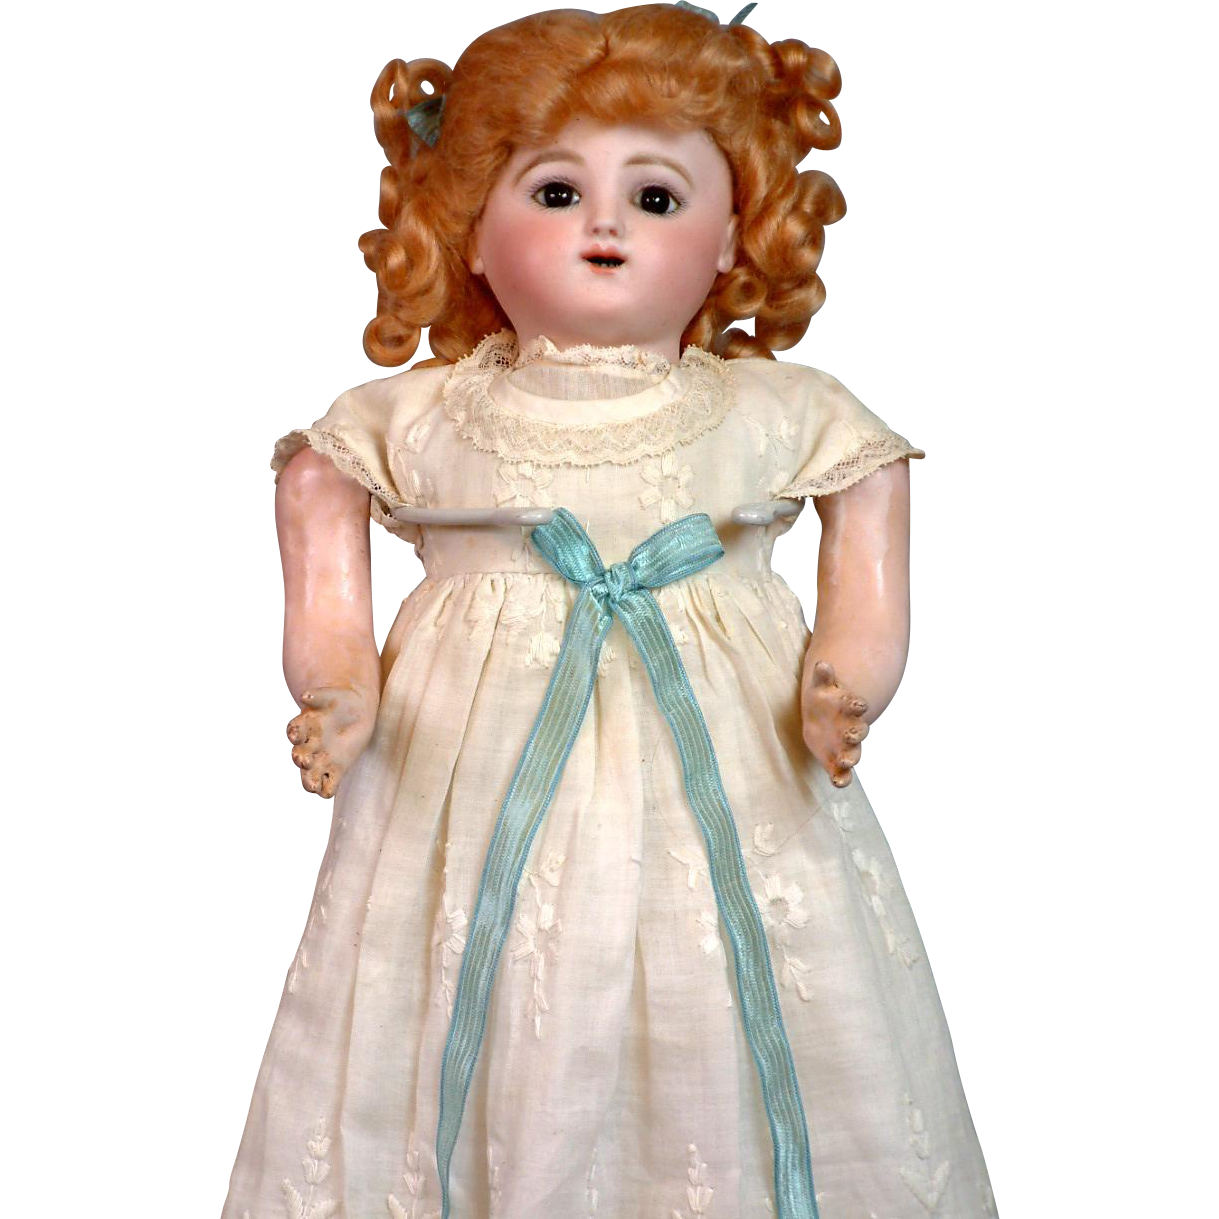 "Extremely Special 17.5"" Jules Nicholas Steiner's 'Bebe Gigoteur' Mechanical Baby Doll C. 1885"